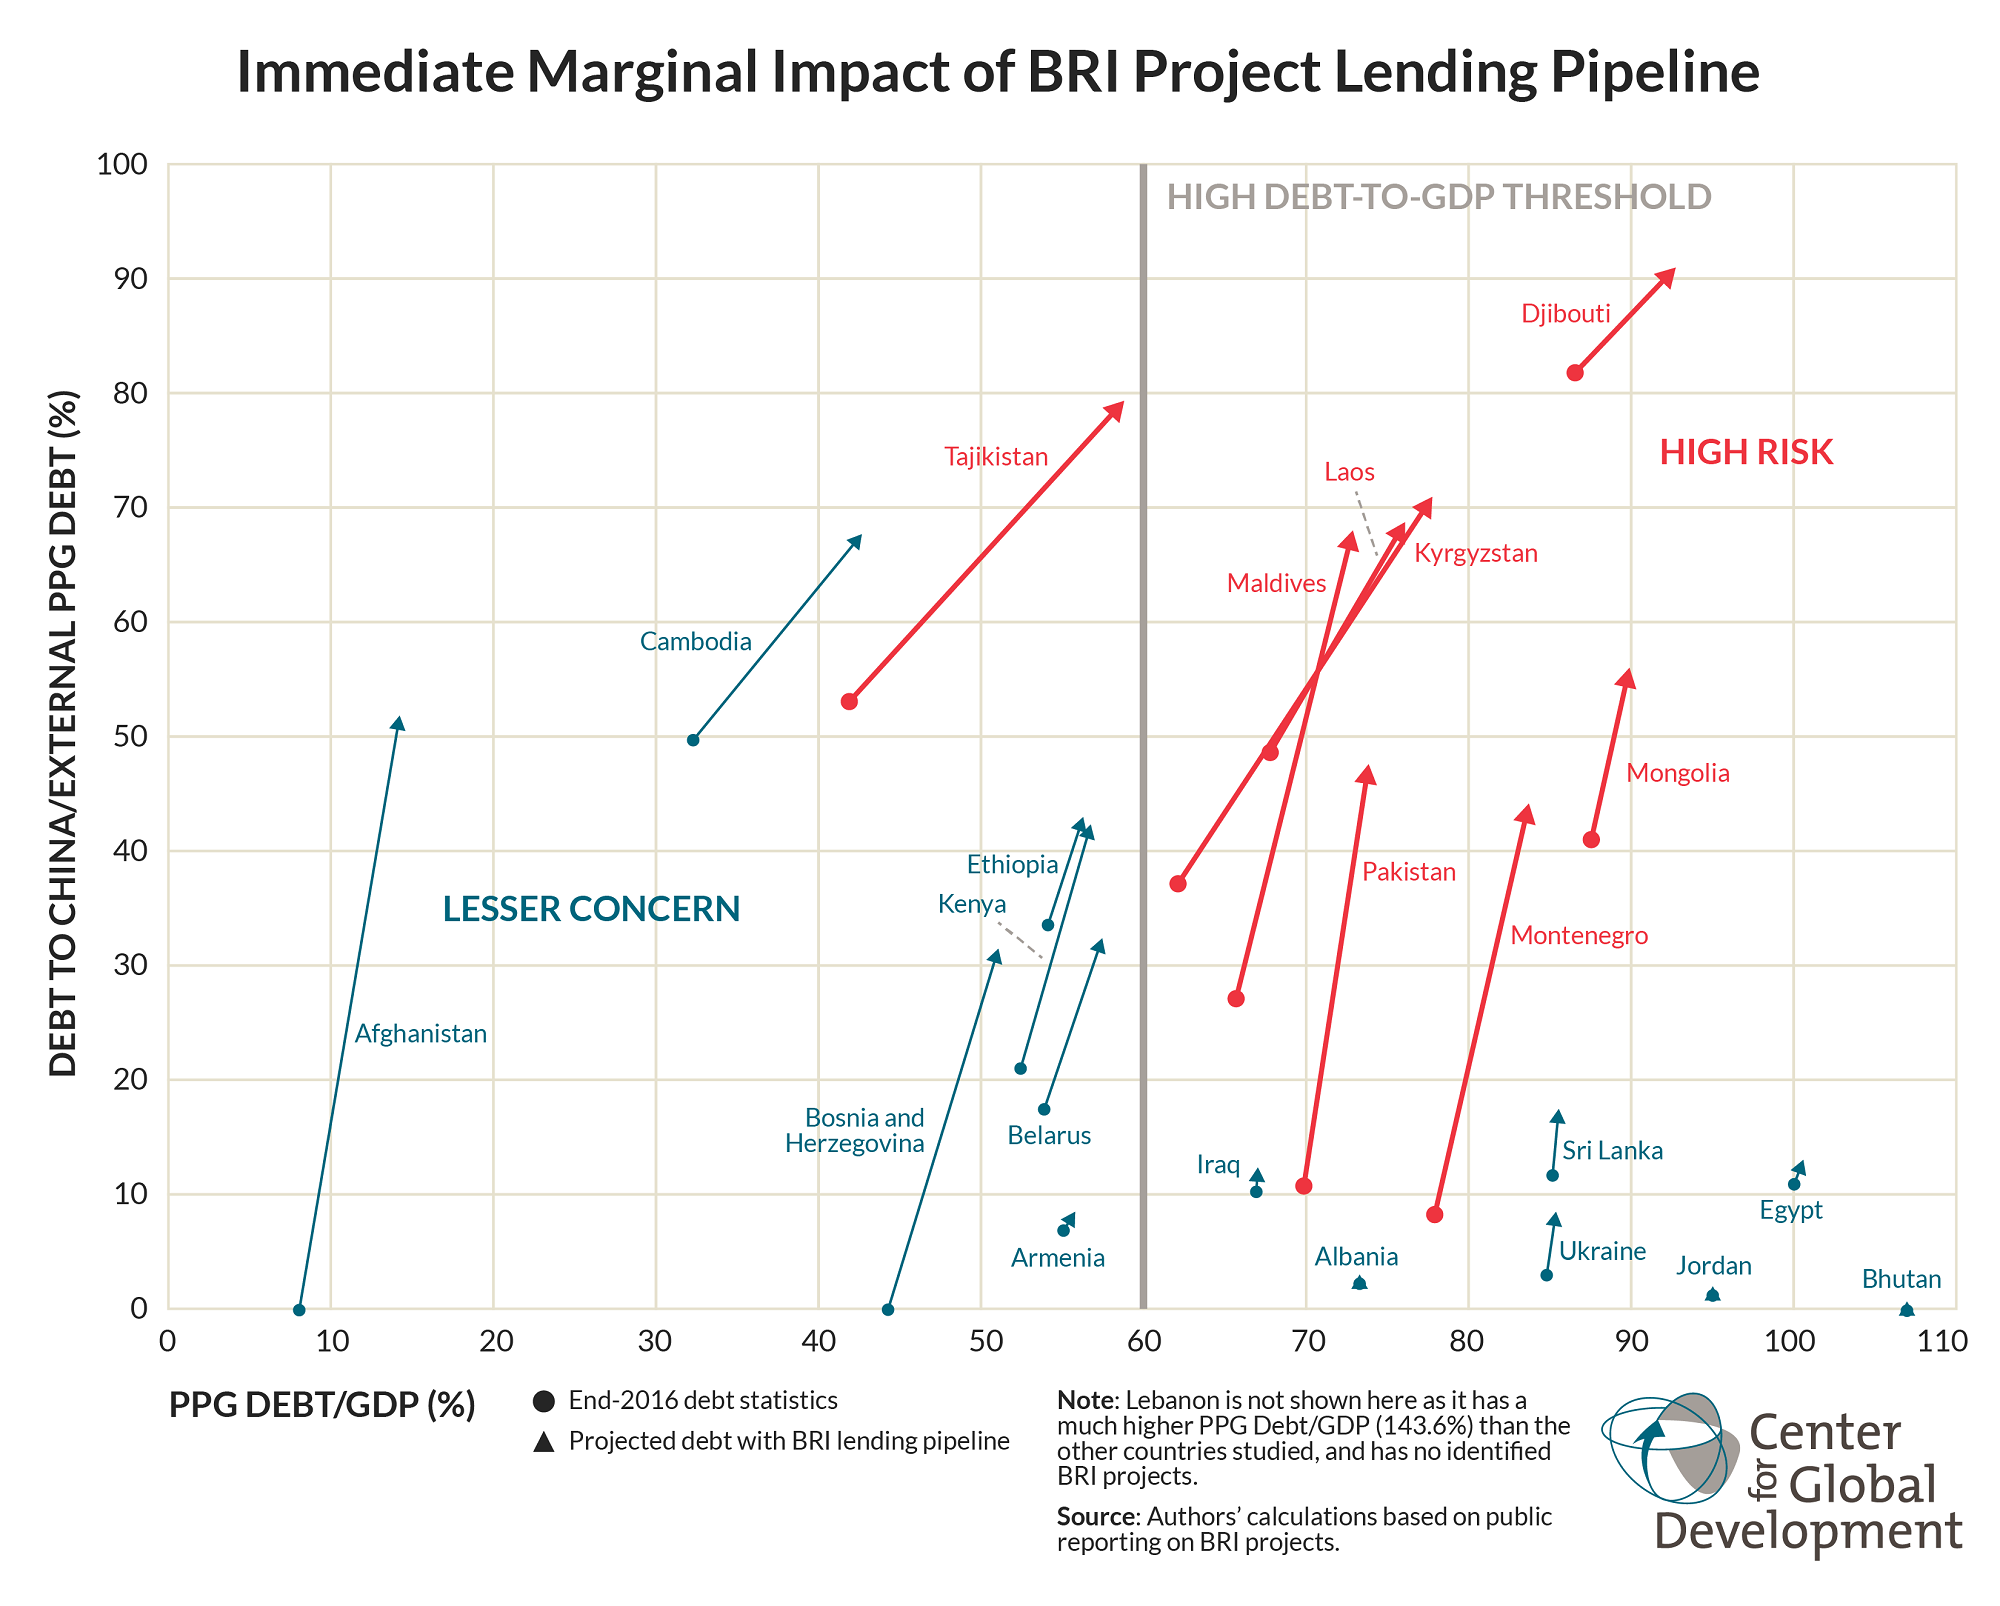 Immediate Marginal Impact of BRI Project Lending Pipeline